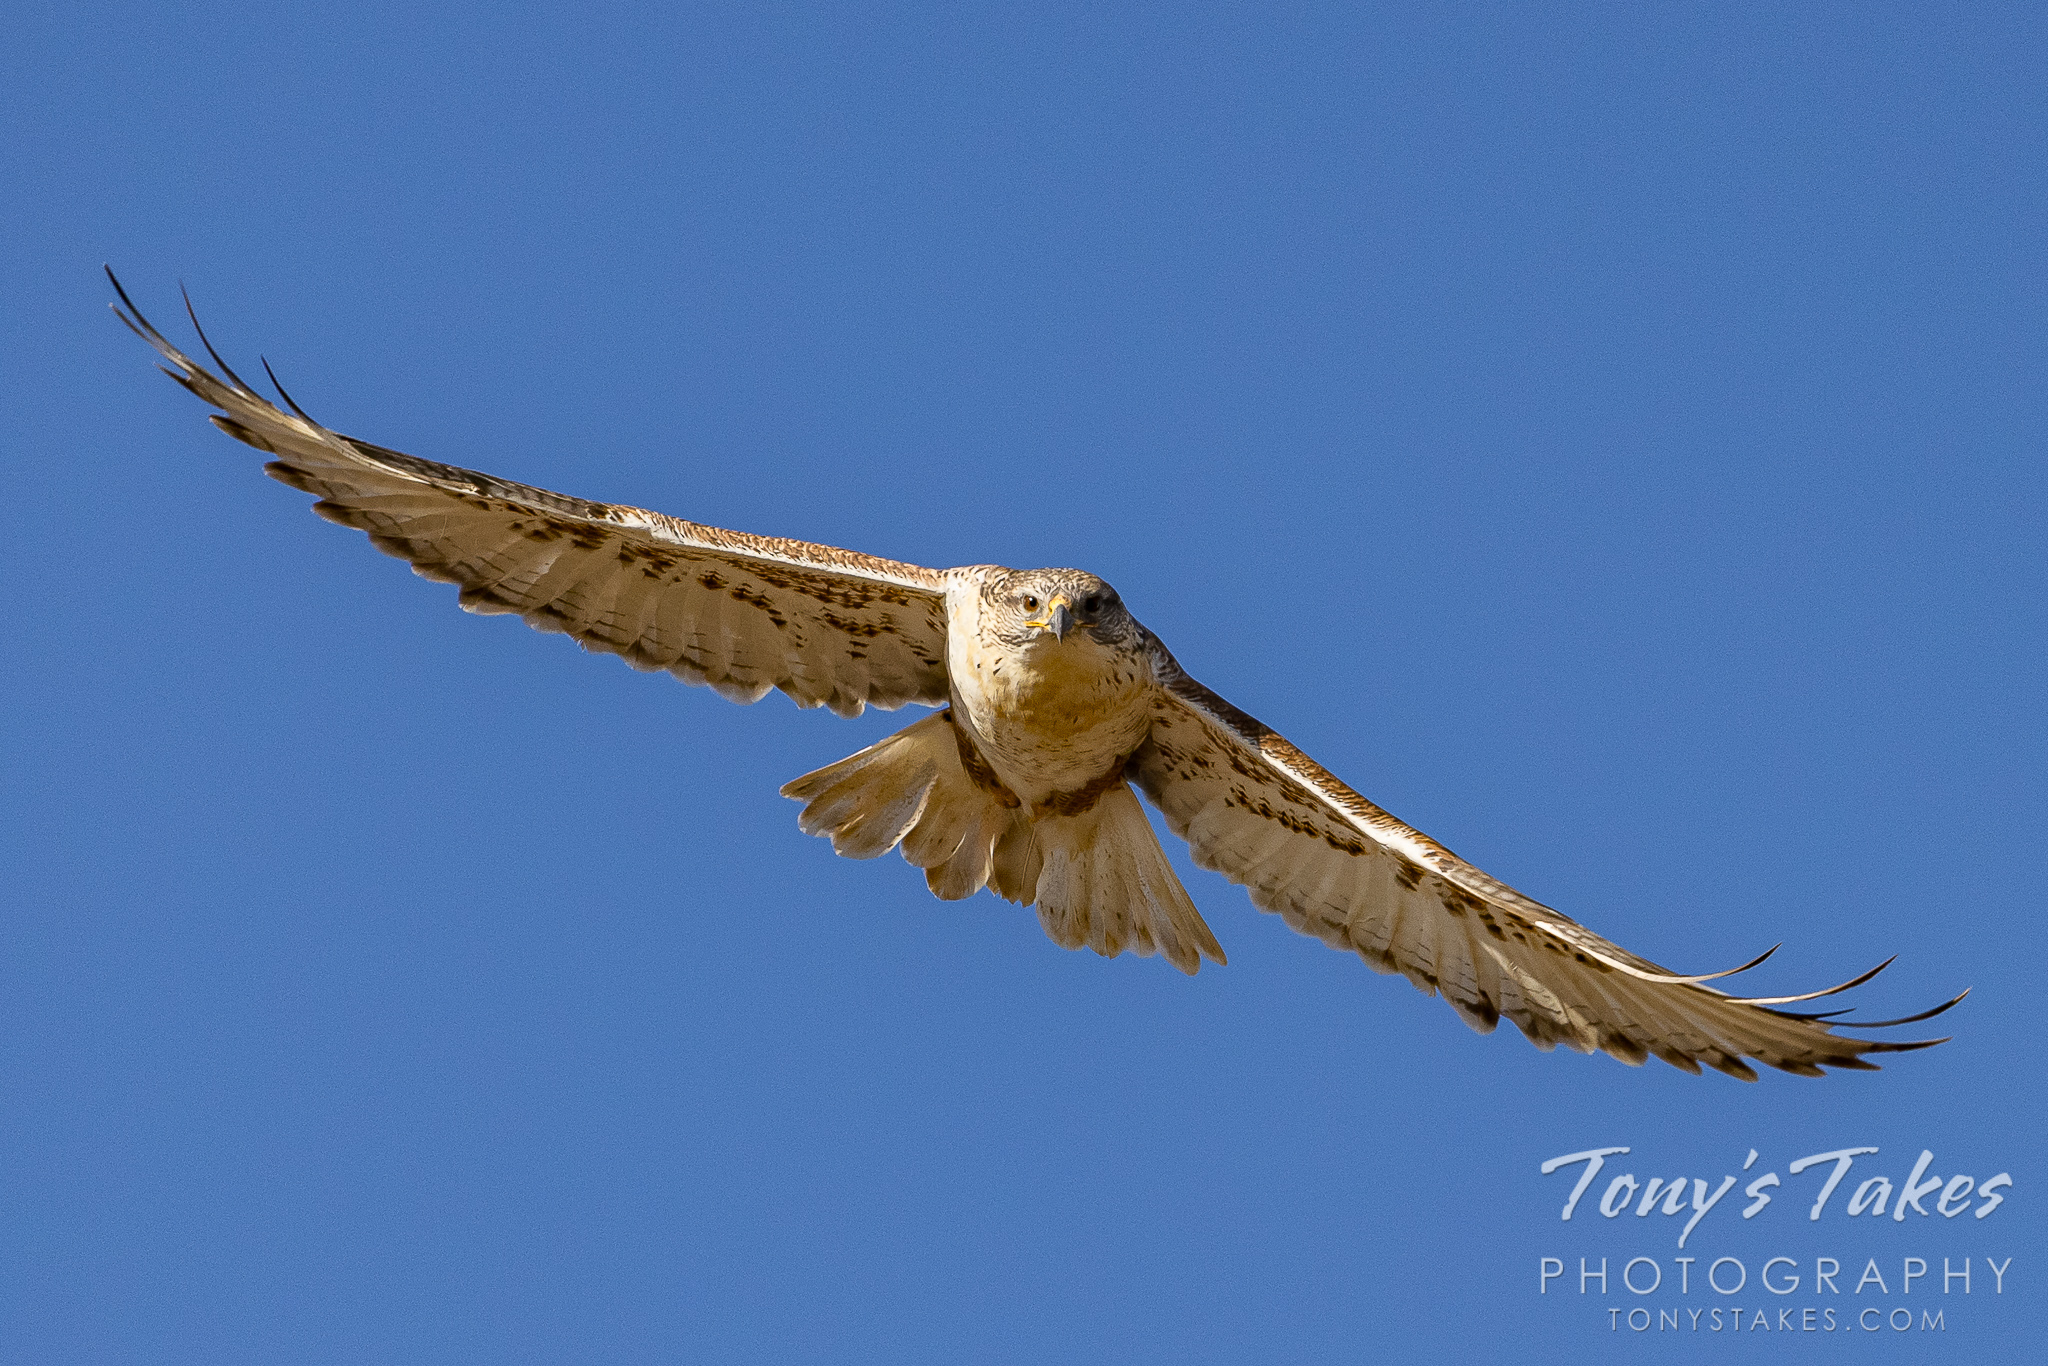 Ferruginous hawk focused and head on